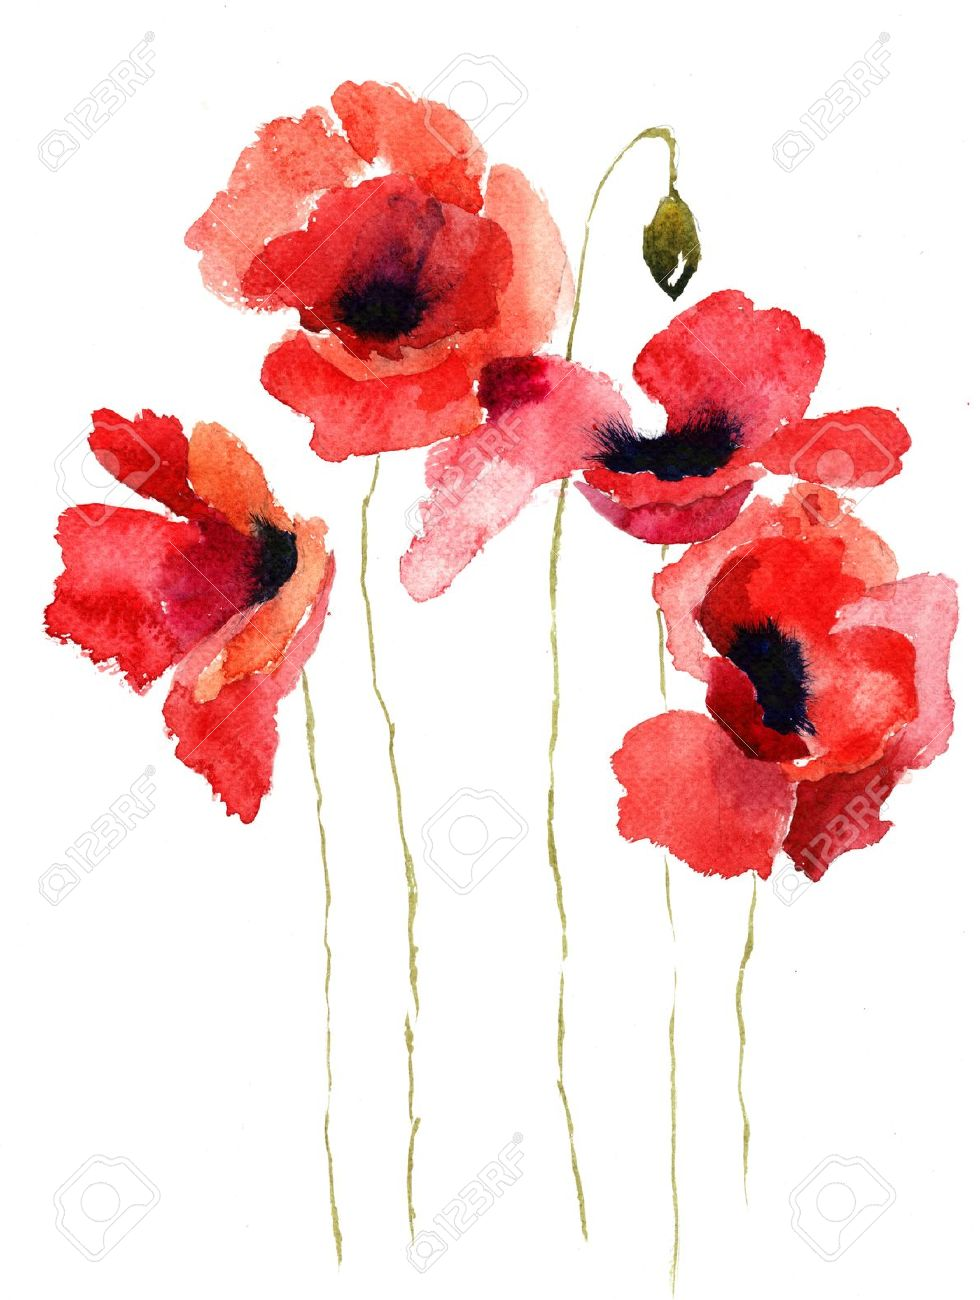 Stylized poppy flowers illustration stock photo picture and royalty stylized poppy flowers illustration mightylinksfo Image collections